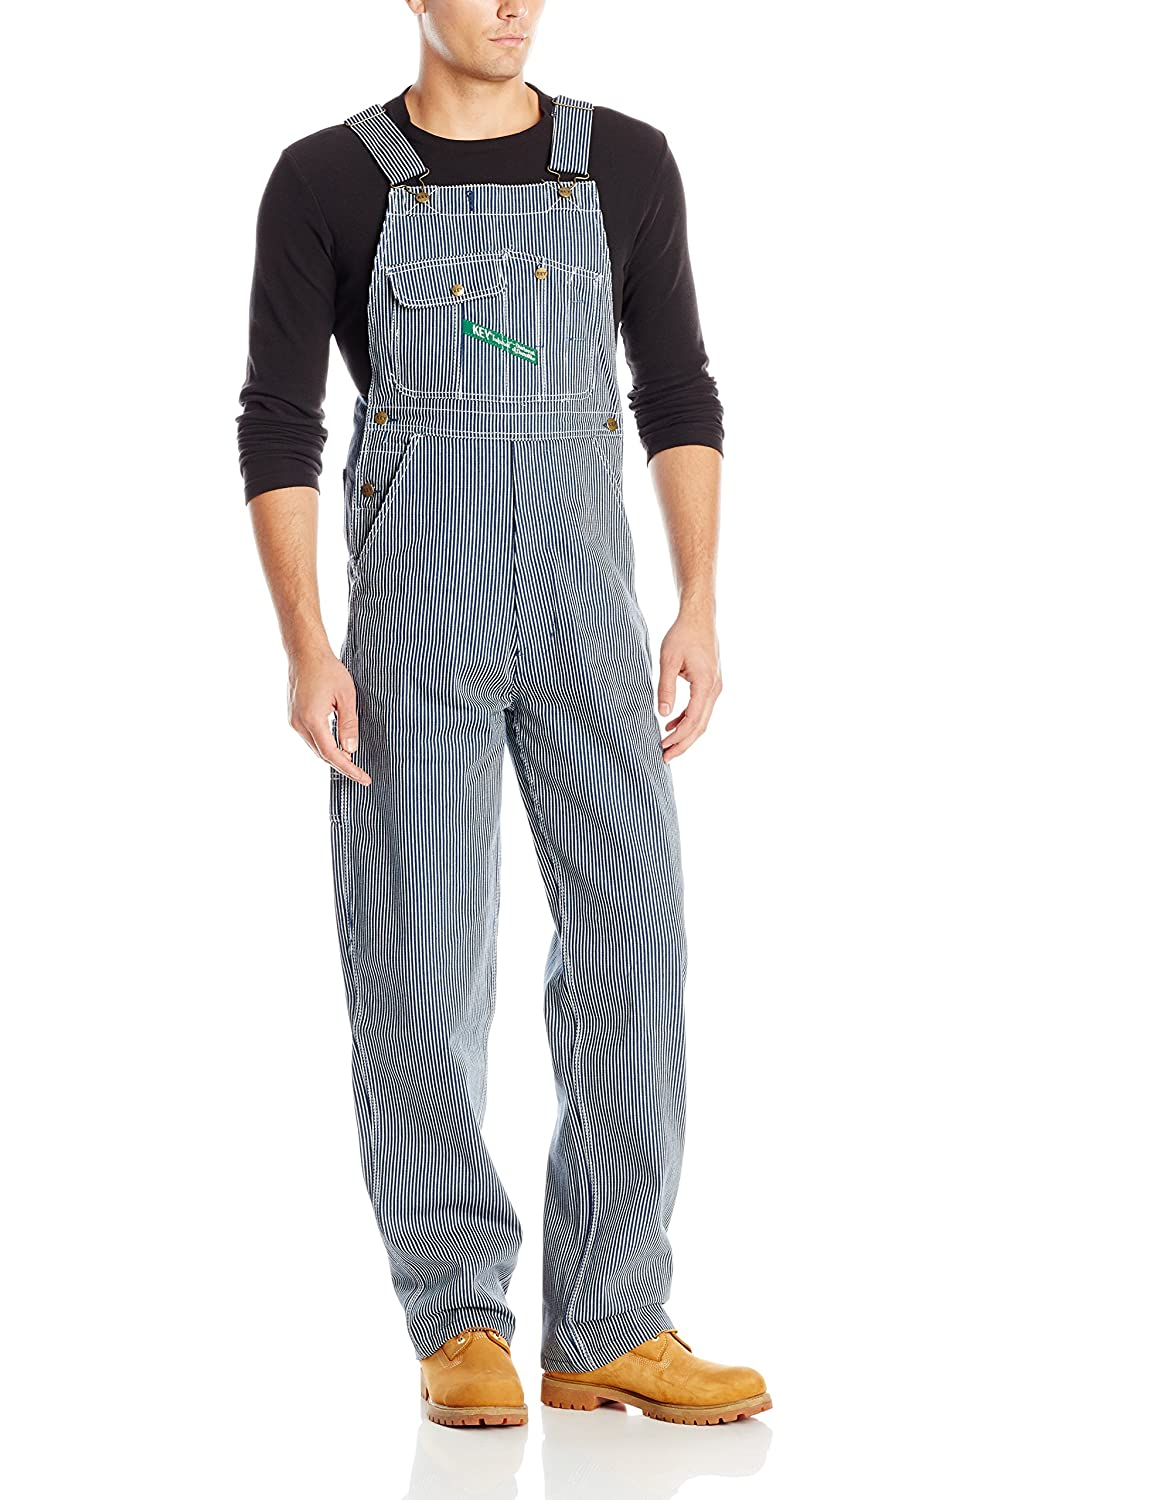 Rockabilly Men's Clothing Key Apparel Mens Hickory Stipe High Back Bib Overall $54.97 AT vintagedancer.com